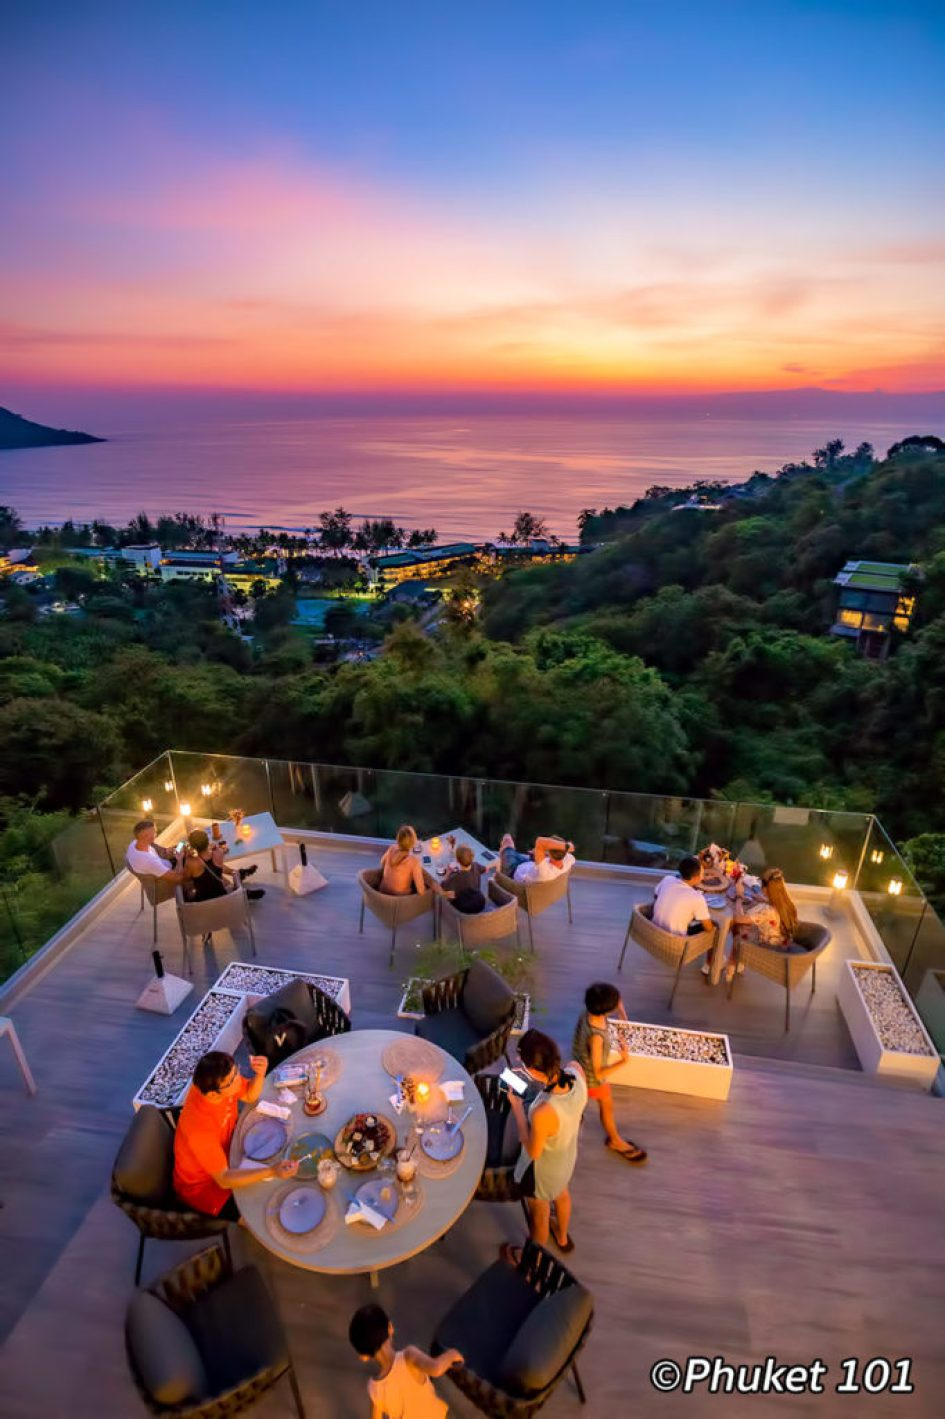 The Sundeck Rooftop Bar in Phuket